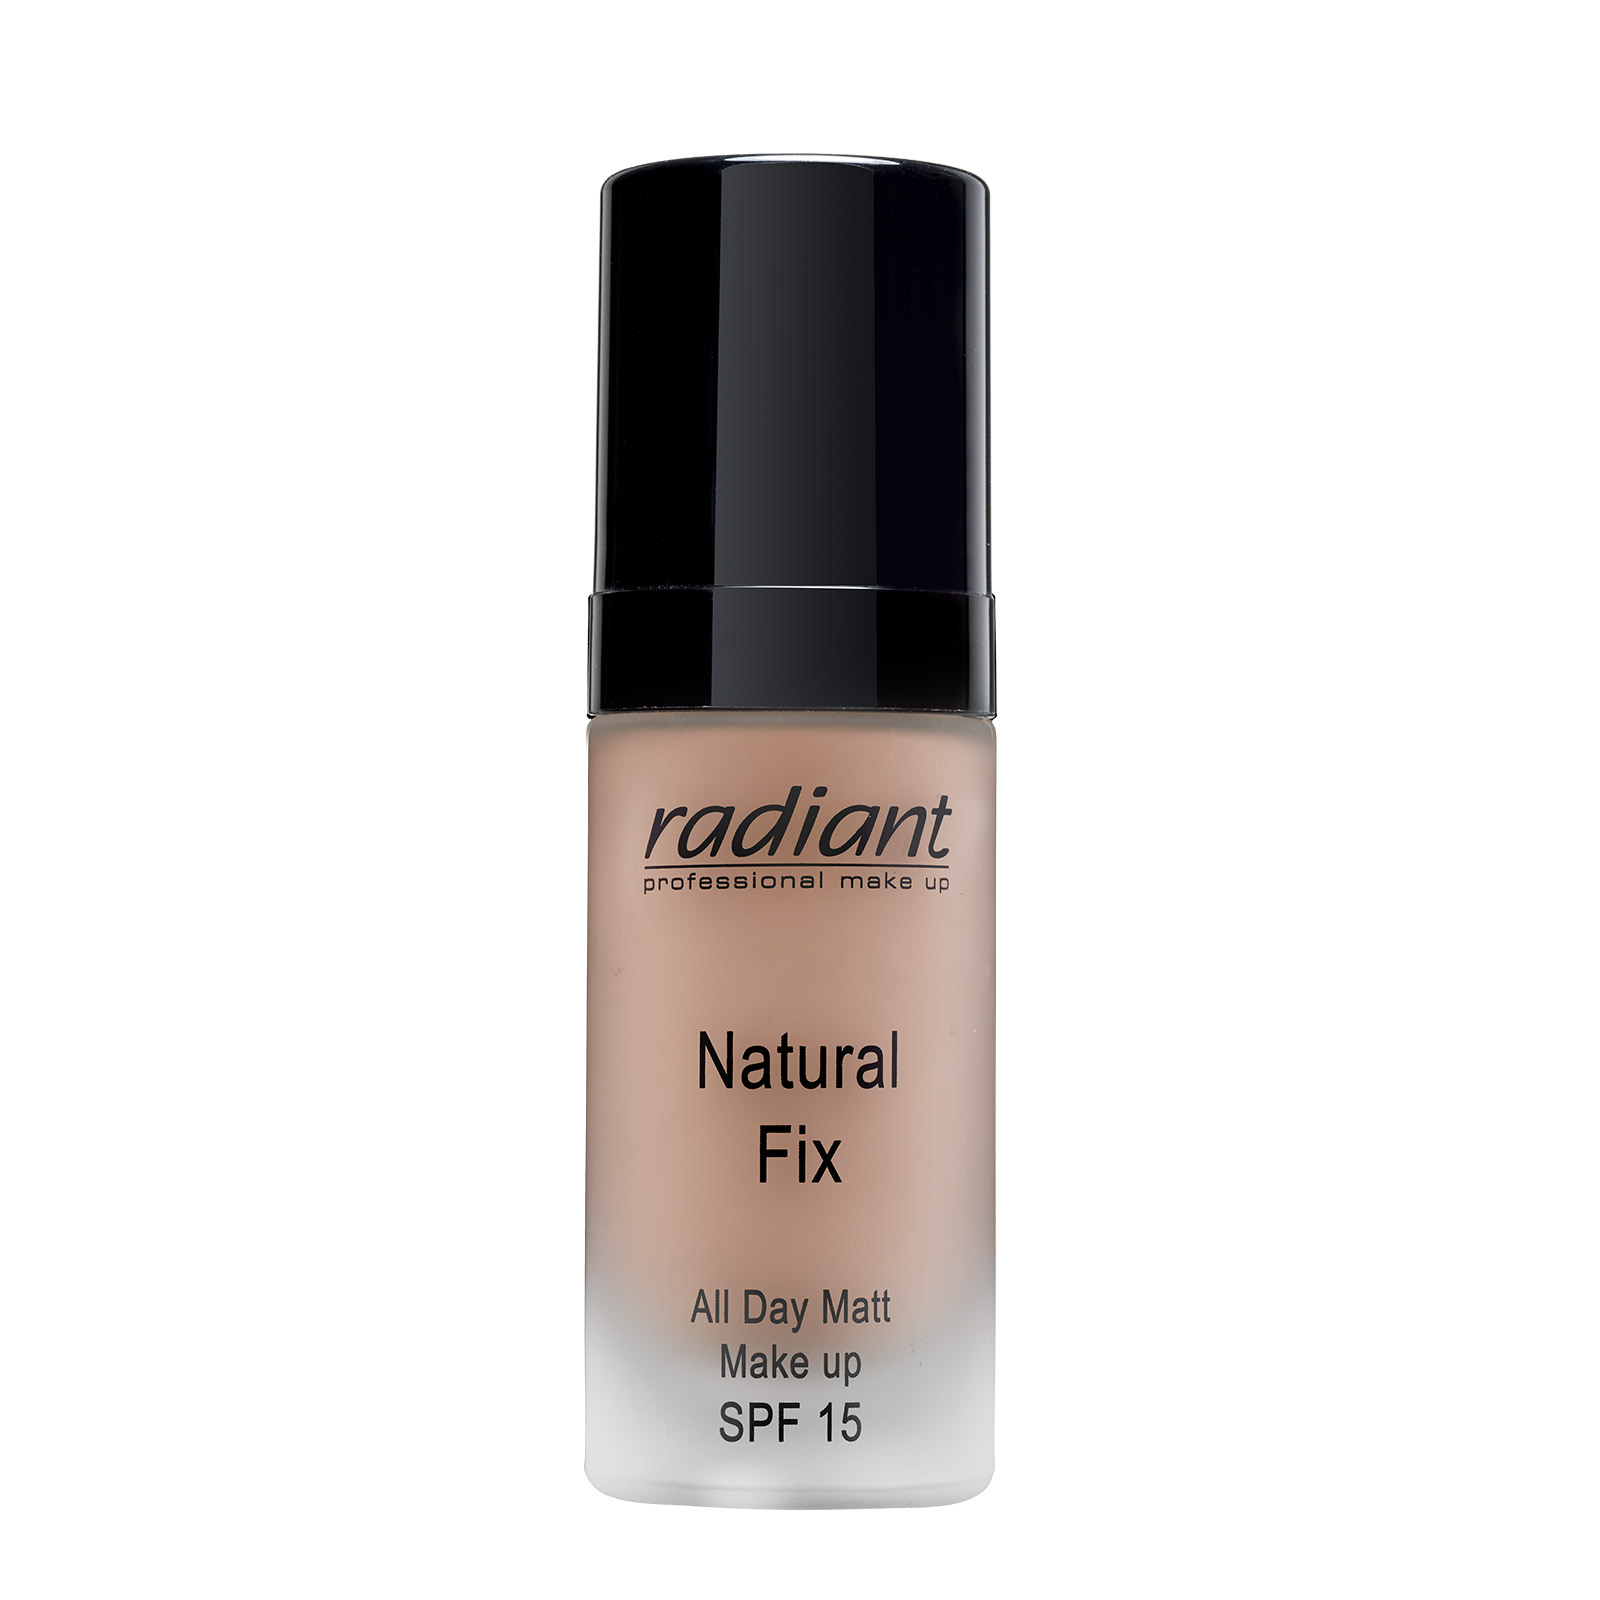 NATURAL FIX ALL DAY MATT MAKE UP SPF 15 (07 Walnut)